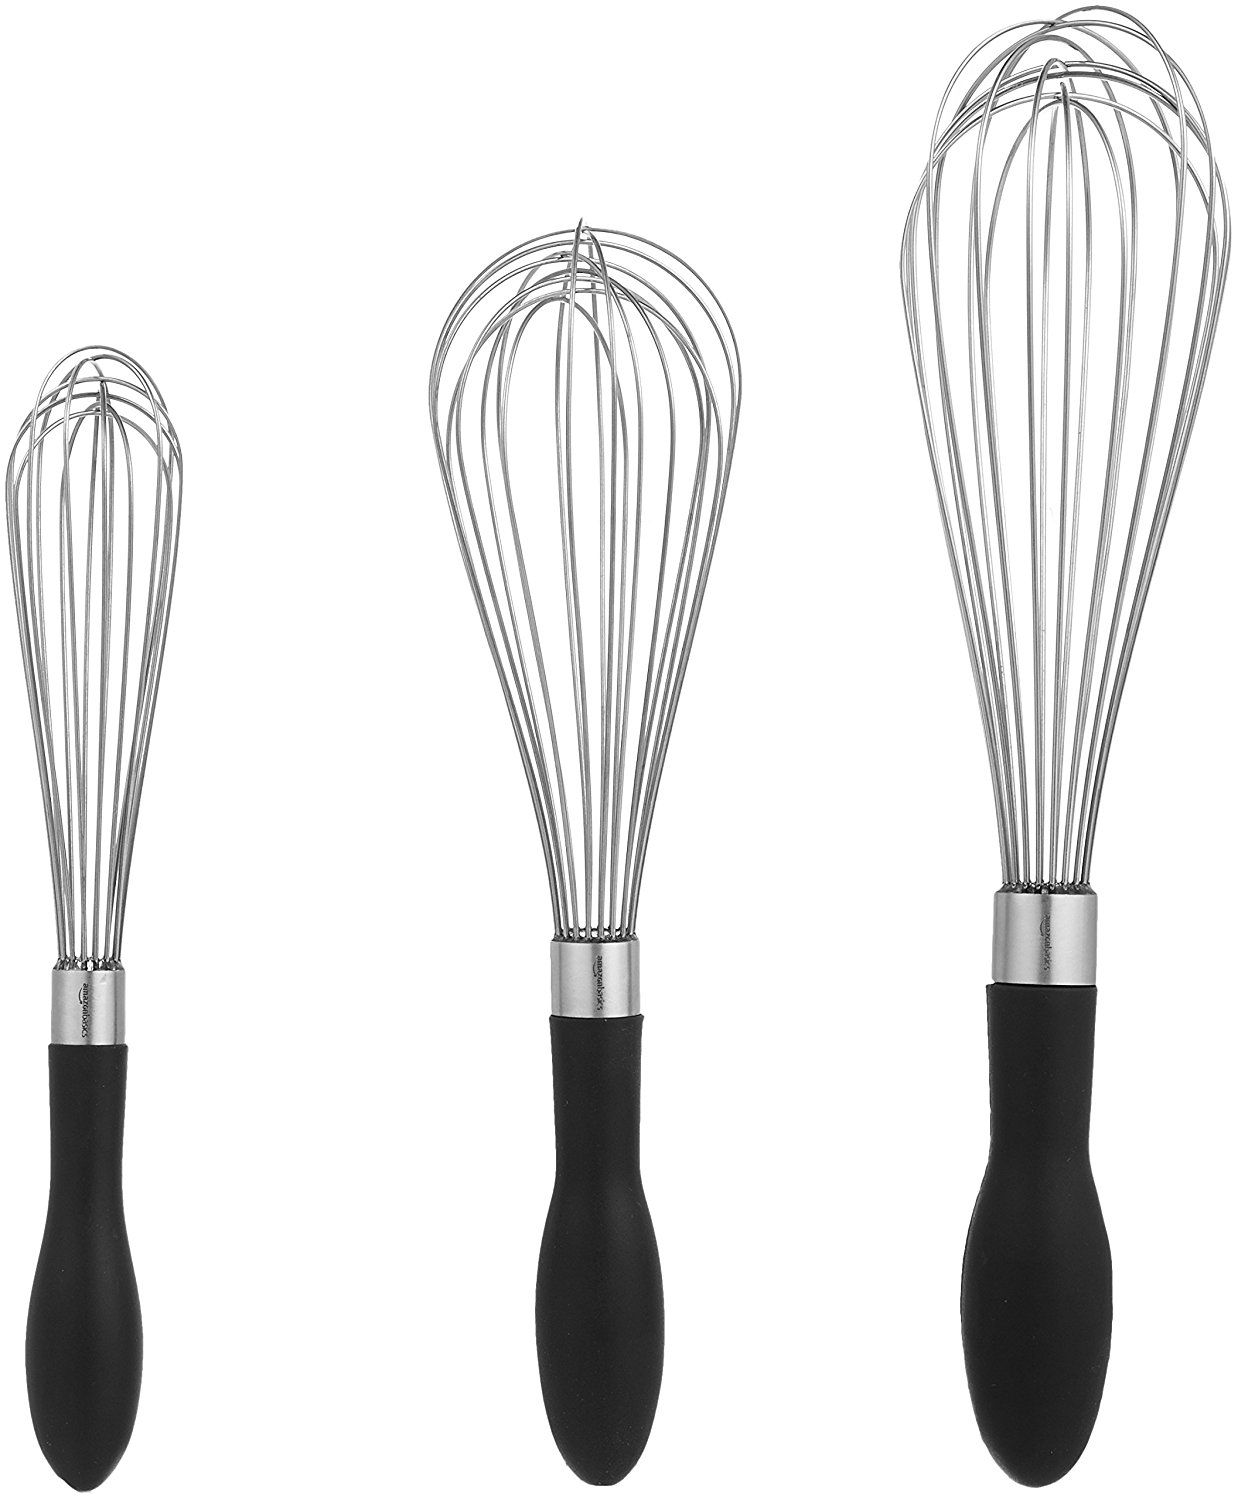 Stainless Steel Wire Whisk Set (3-Piece)